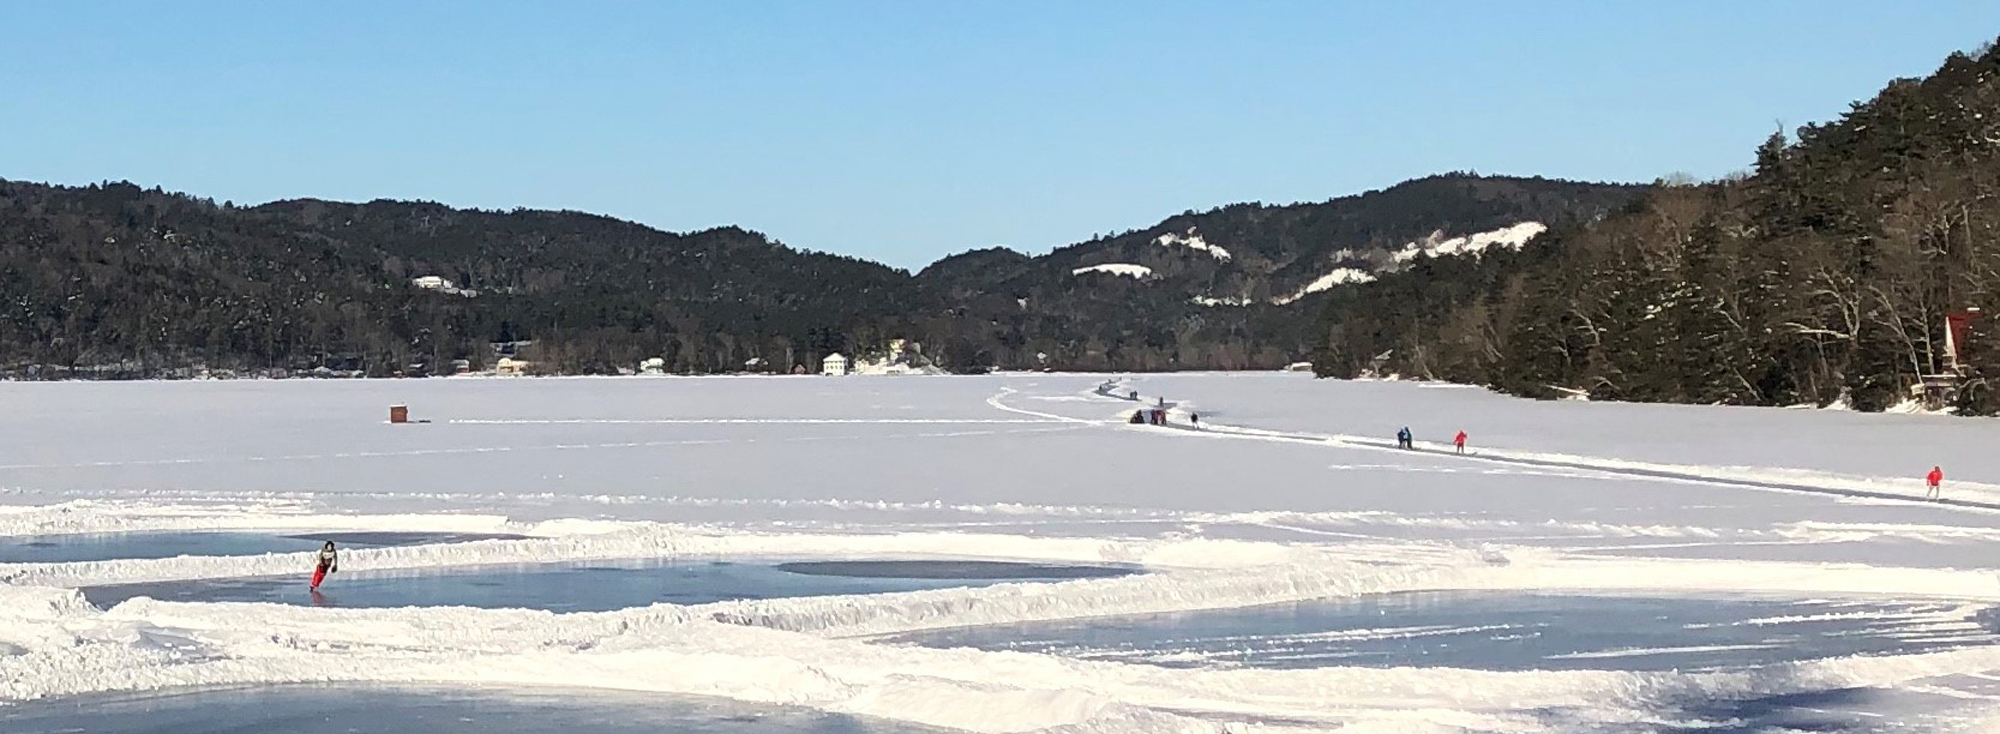 Winter Skate Trail on Lake Morey